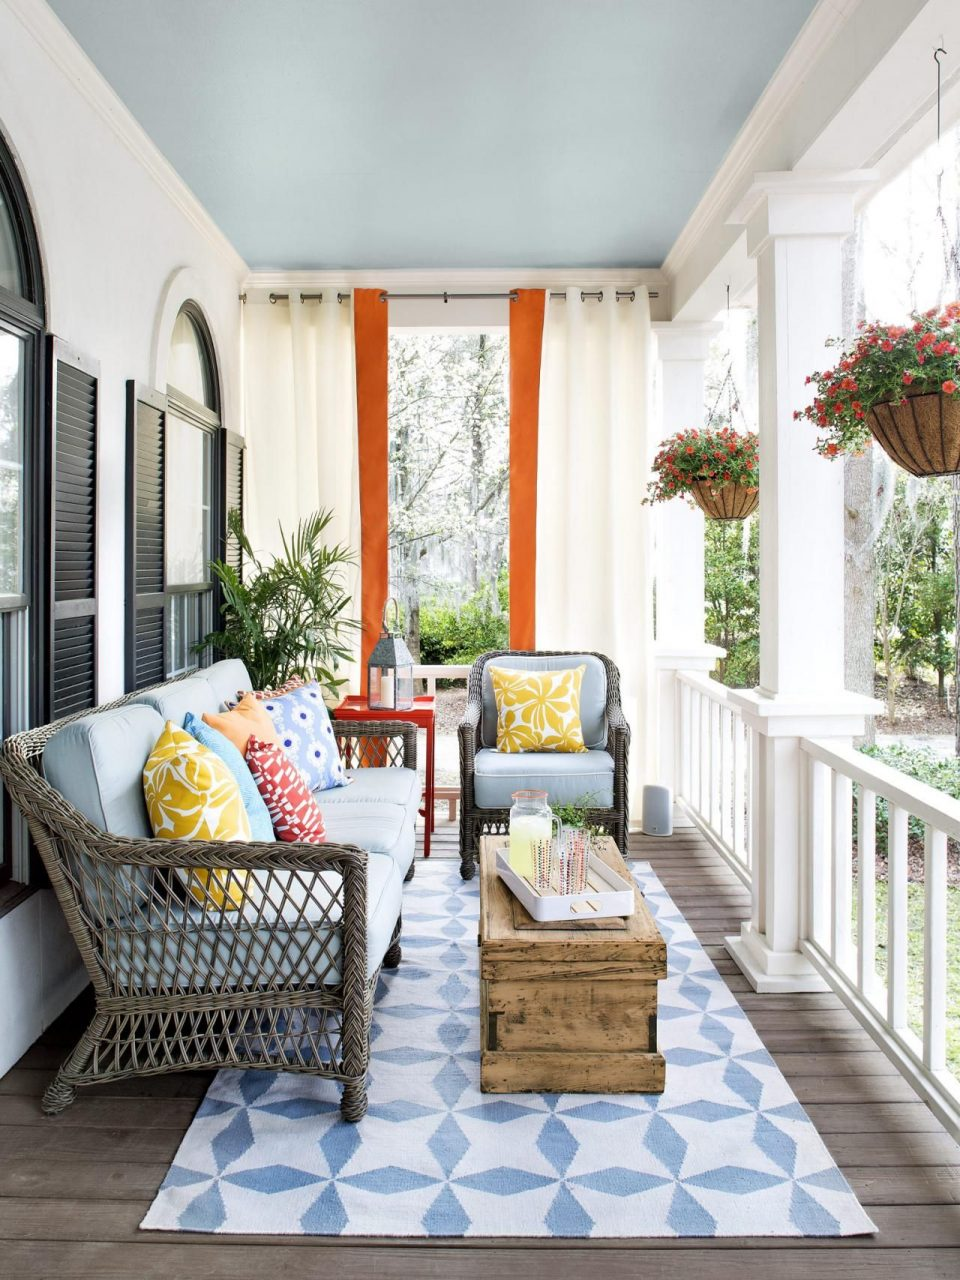 Porch Design And Decorating Ideas Front Porch Front Porch